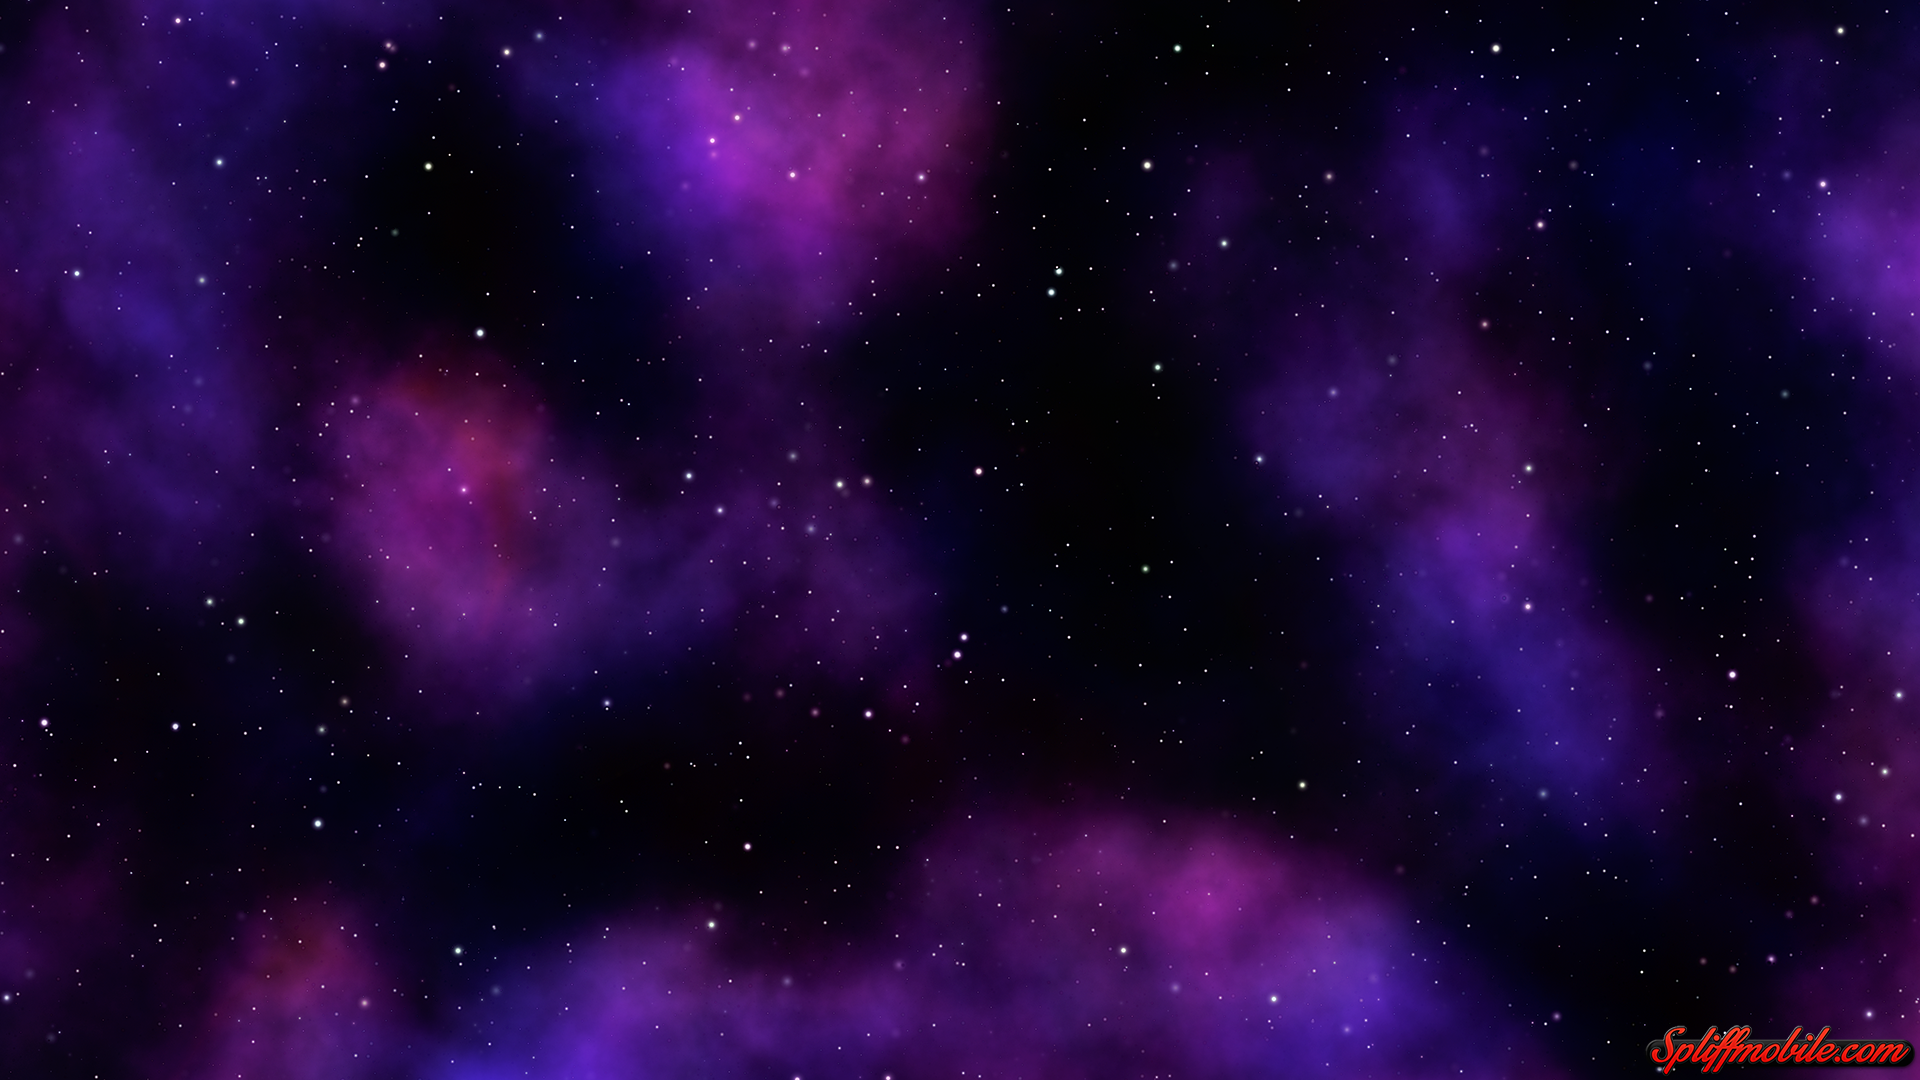 Space HD PNG